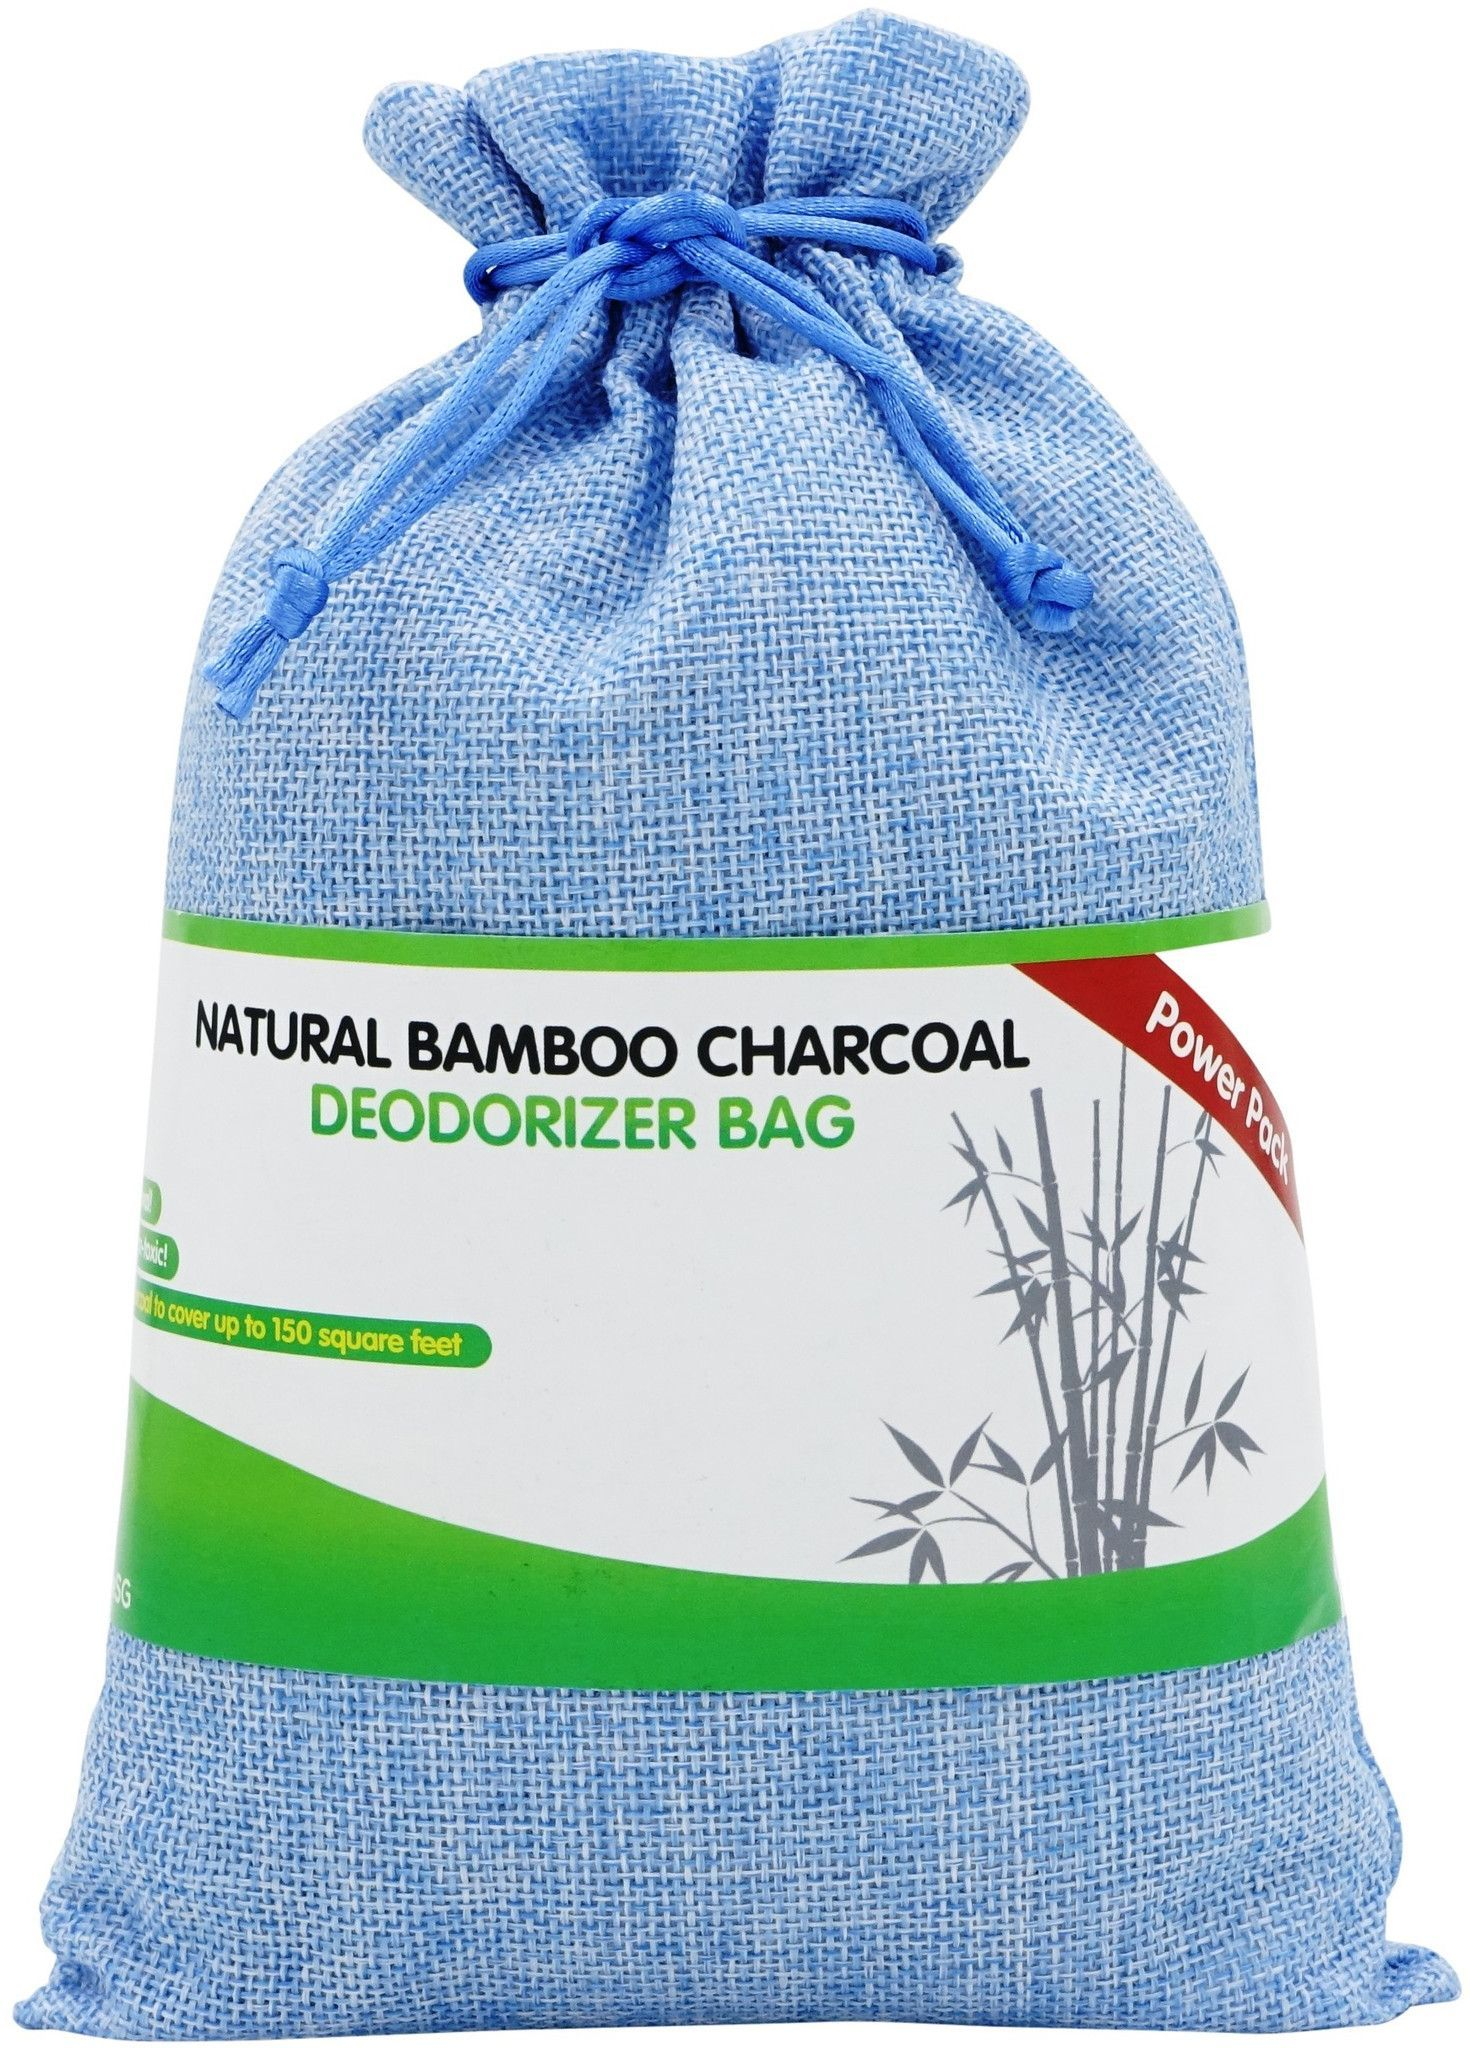 Natural Bamboo Charcoal Deodorizer Bag Power Pack Bamboo